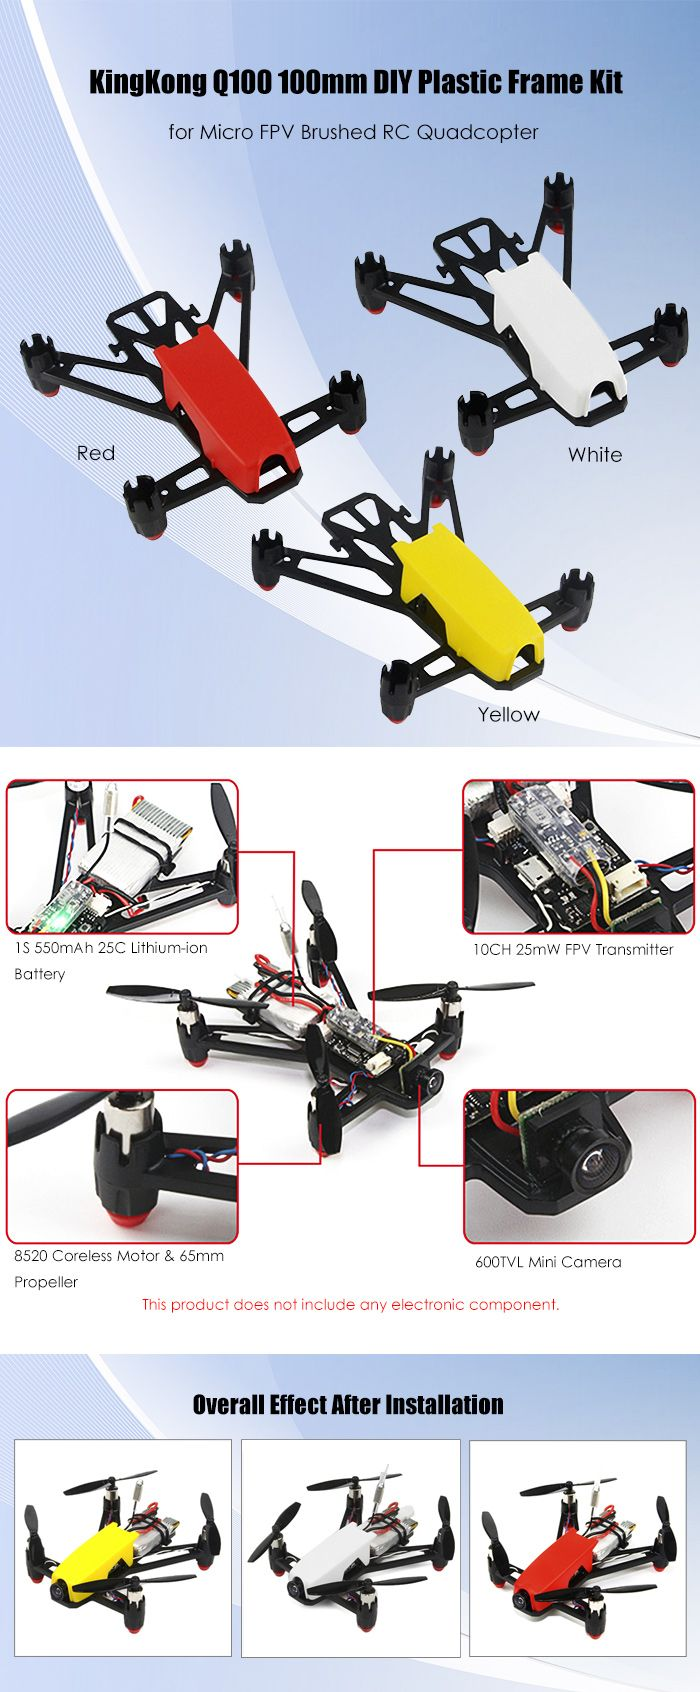 KingKong Q100 100mm DIY Frame Kit Compatible with 8520 Coreless Motor for Micro FPV Brushed RC Quadcopter